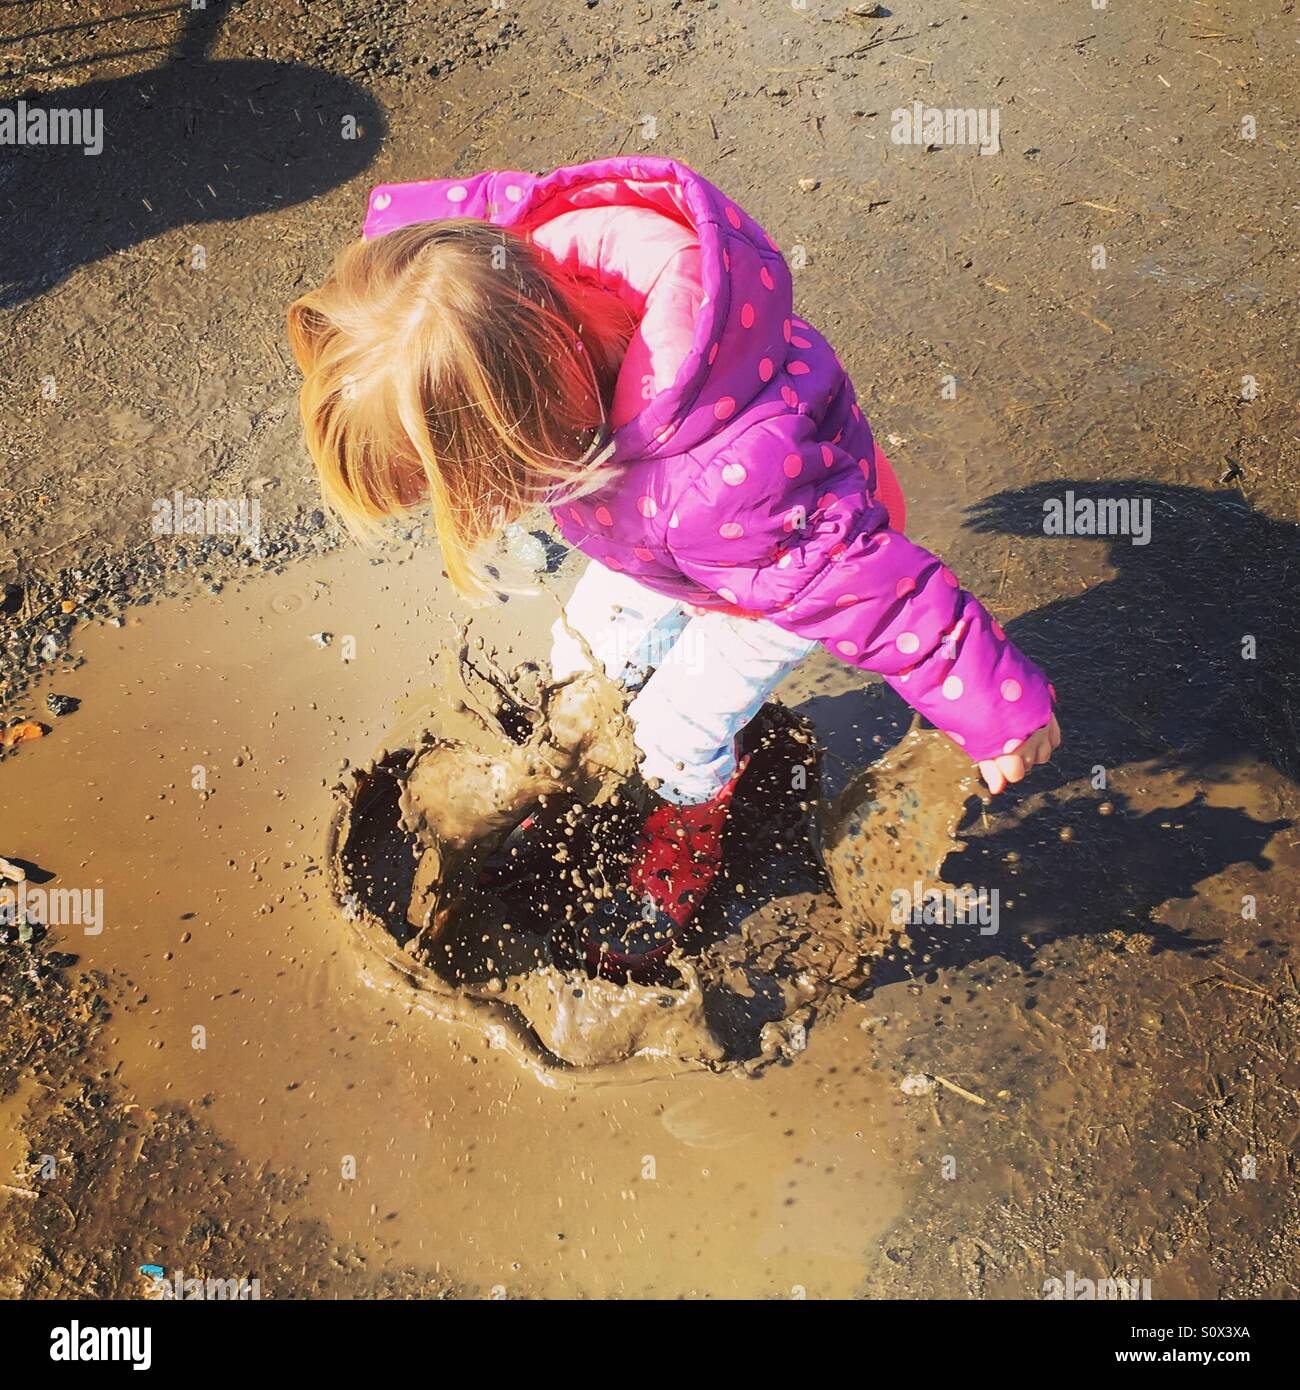 Girl toddler jumping up and down in muddy puddles - Stock Image